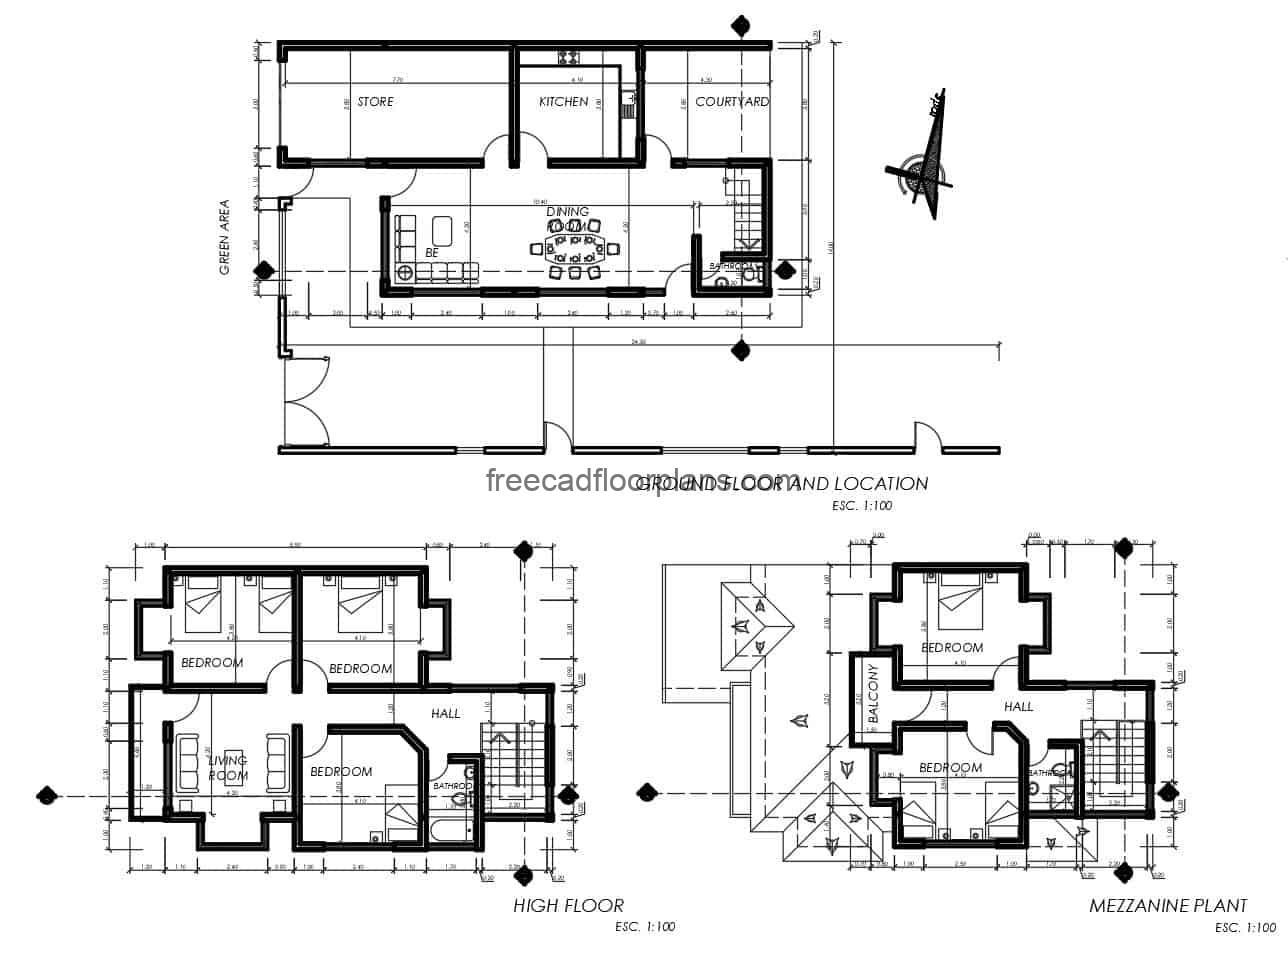 Modern house project with some classic details, two levels with mezzanine, blocks in DWG, distribution of interior spaces